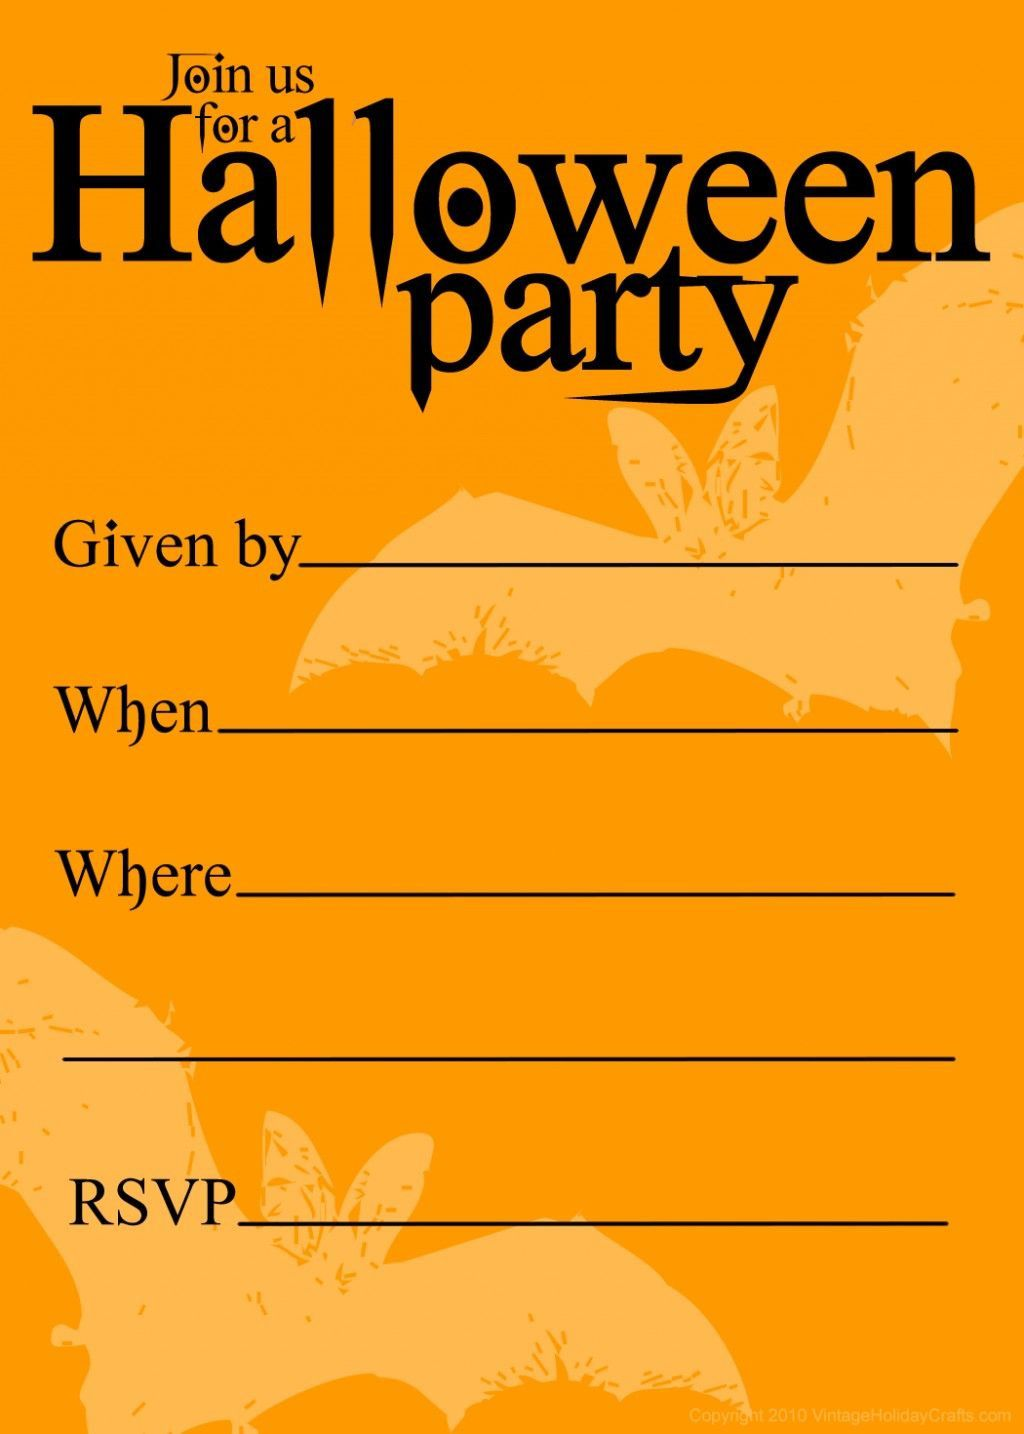 001 Dreaded Halloween Party Invitation Template Picture  Templates Scary SpookyFull